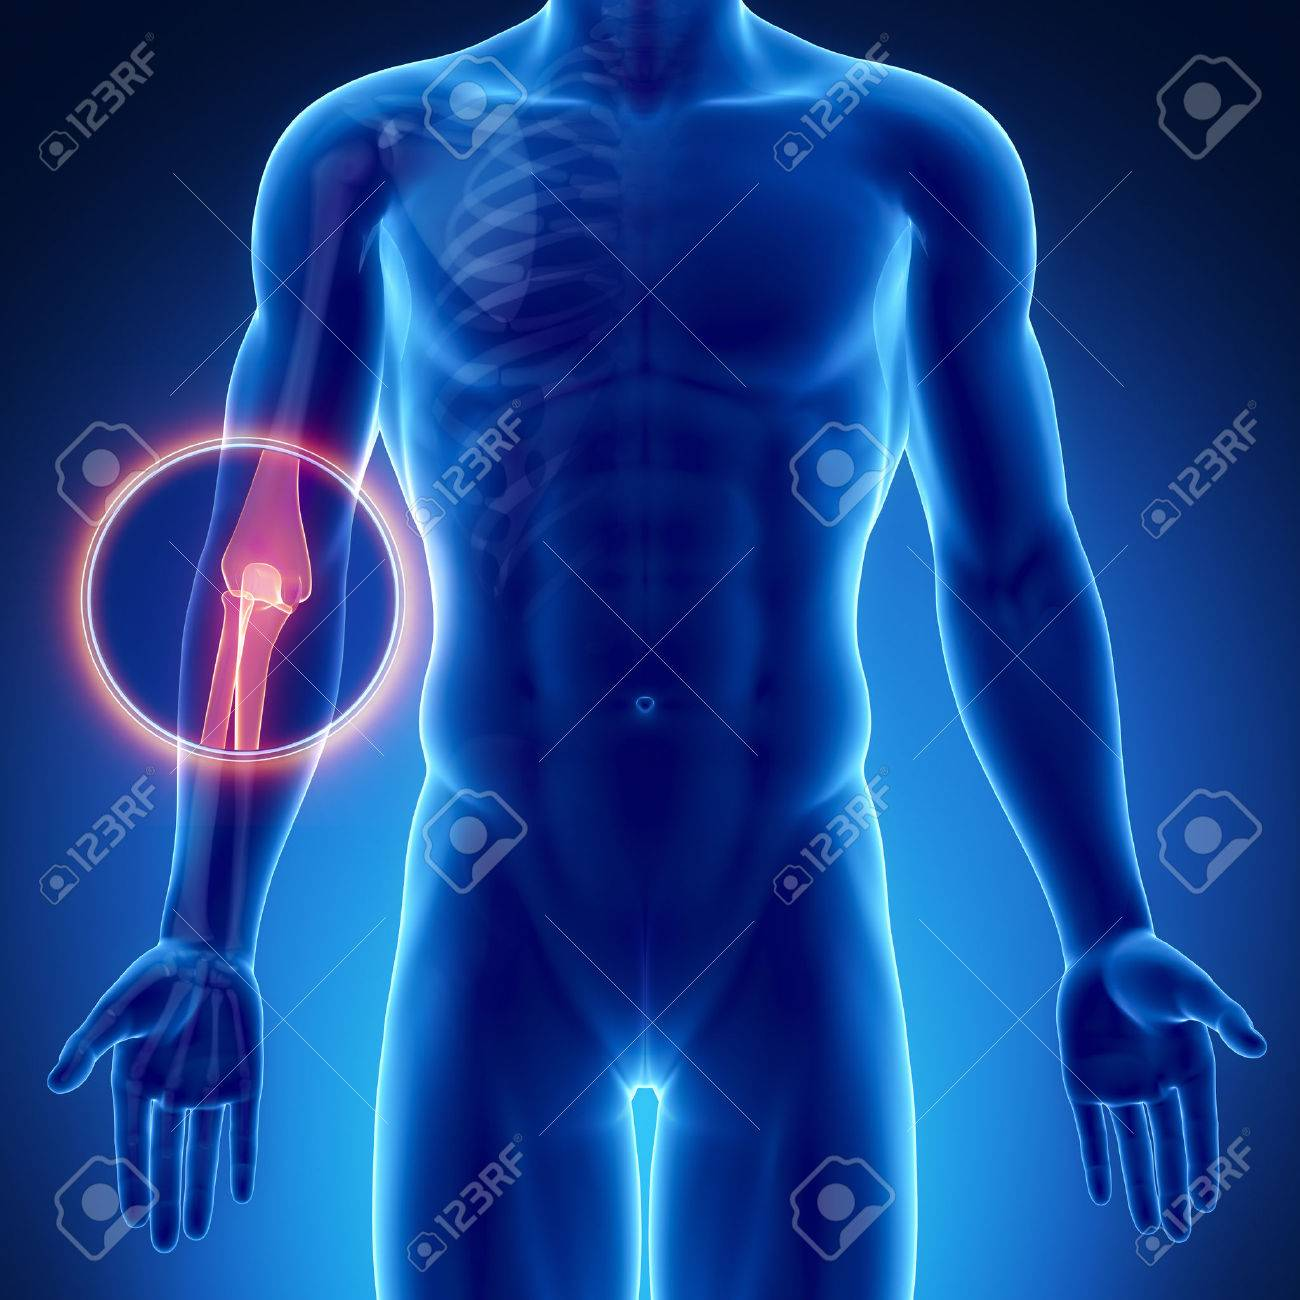 Male Bone Anatomy Elbow Stock Photo Picture And Royalty Free Image